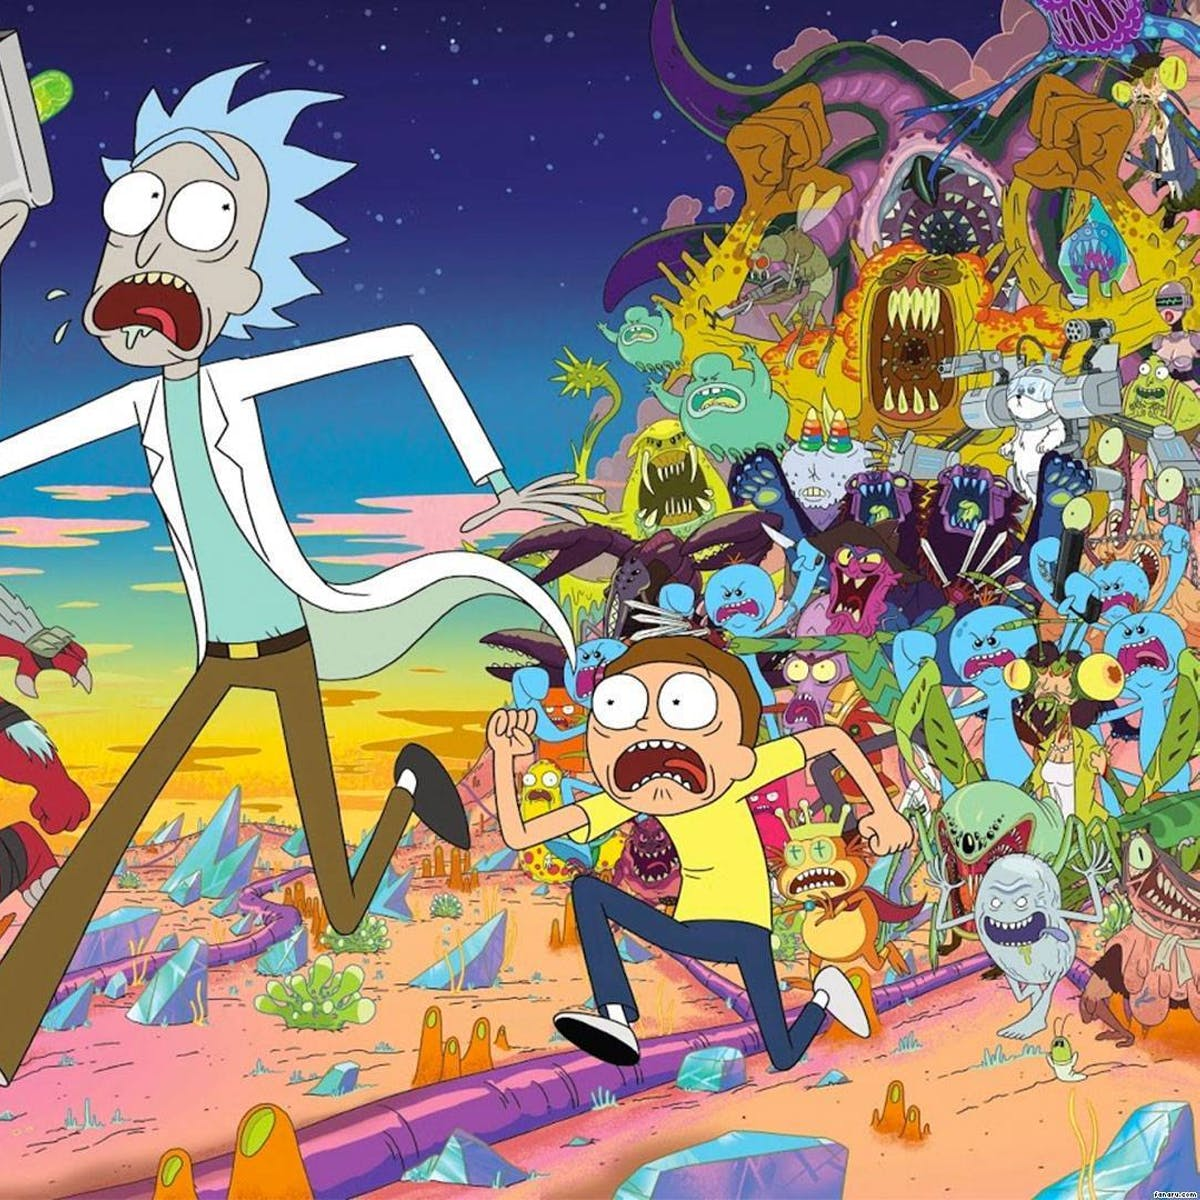 McDonald's Might Bring Back Szechuan Sauce for 'Rick and Morty'   Inverse